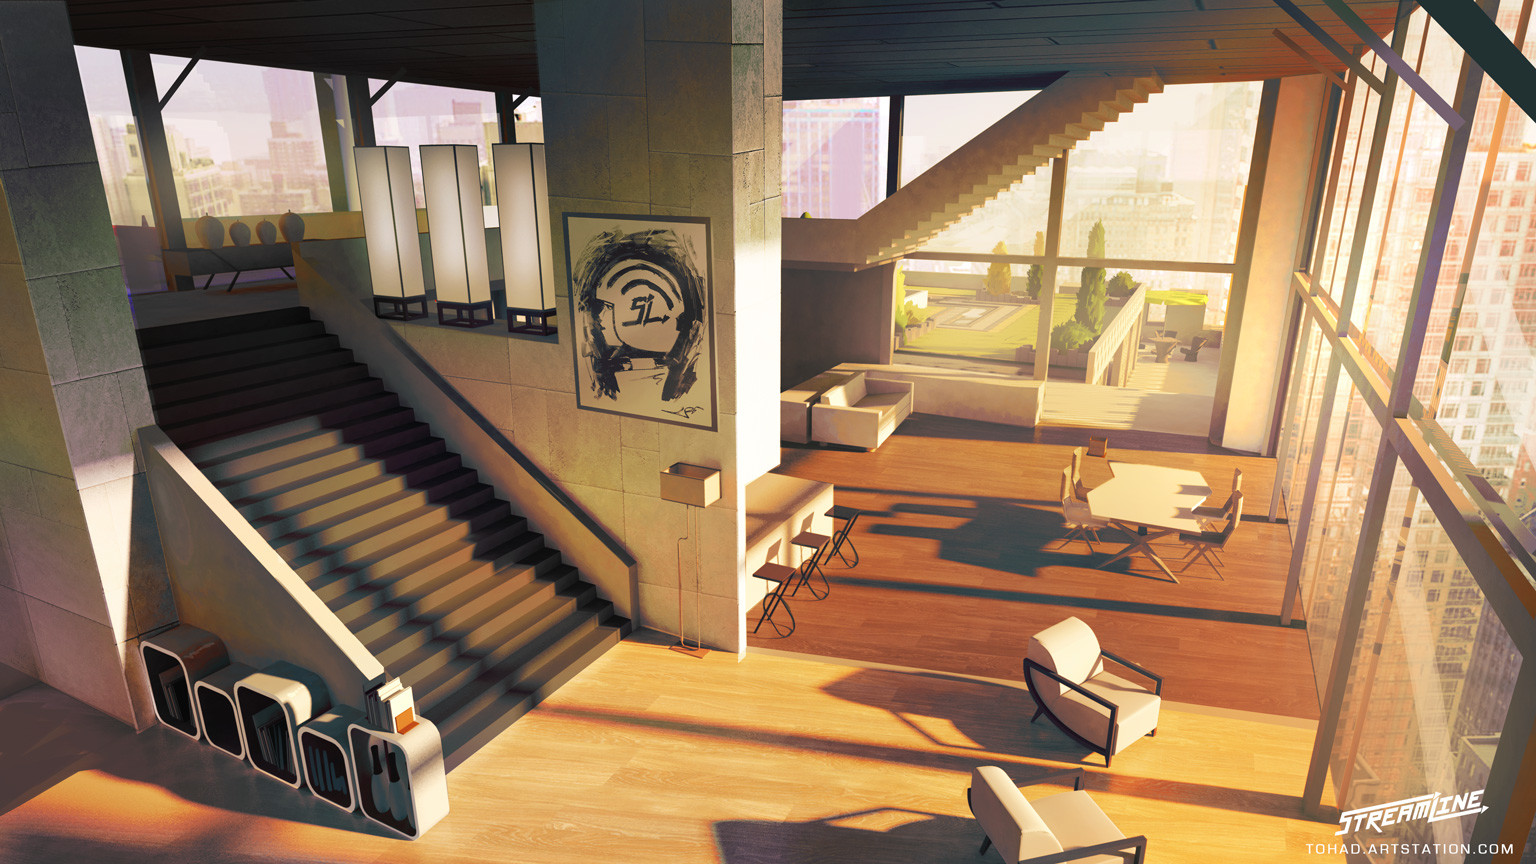 Streamline concept art high rise lounge by tohad on for Streamline luxury suites